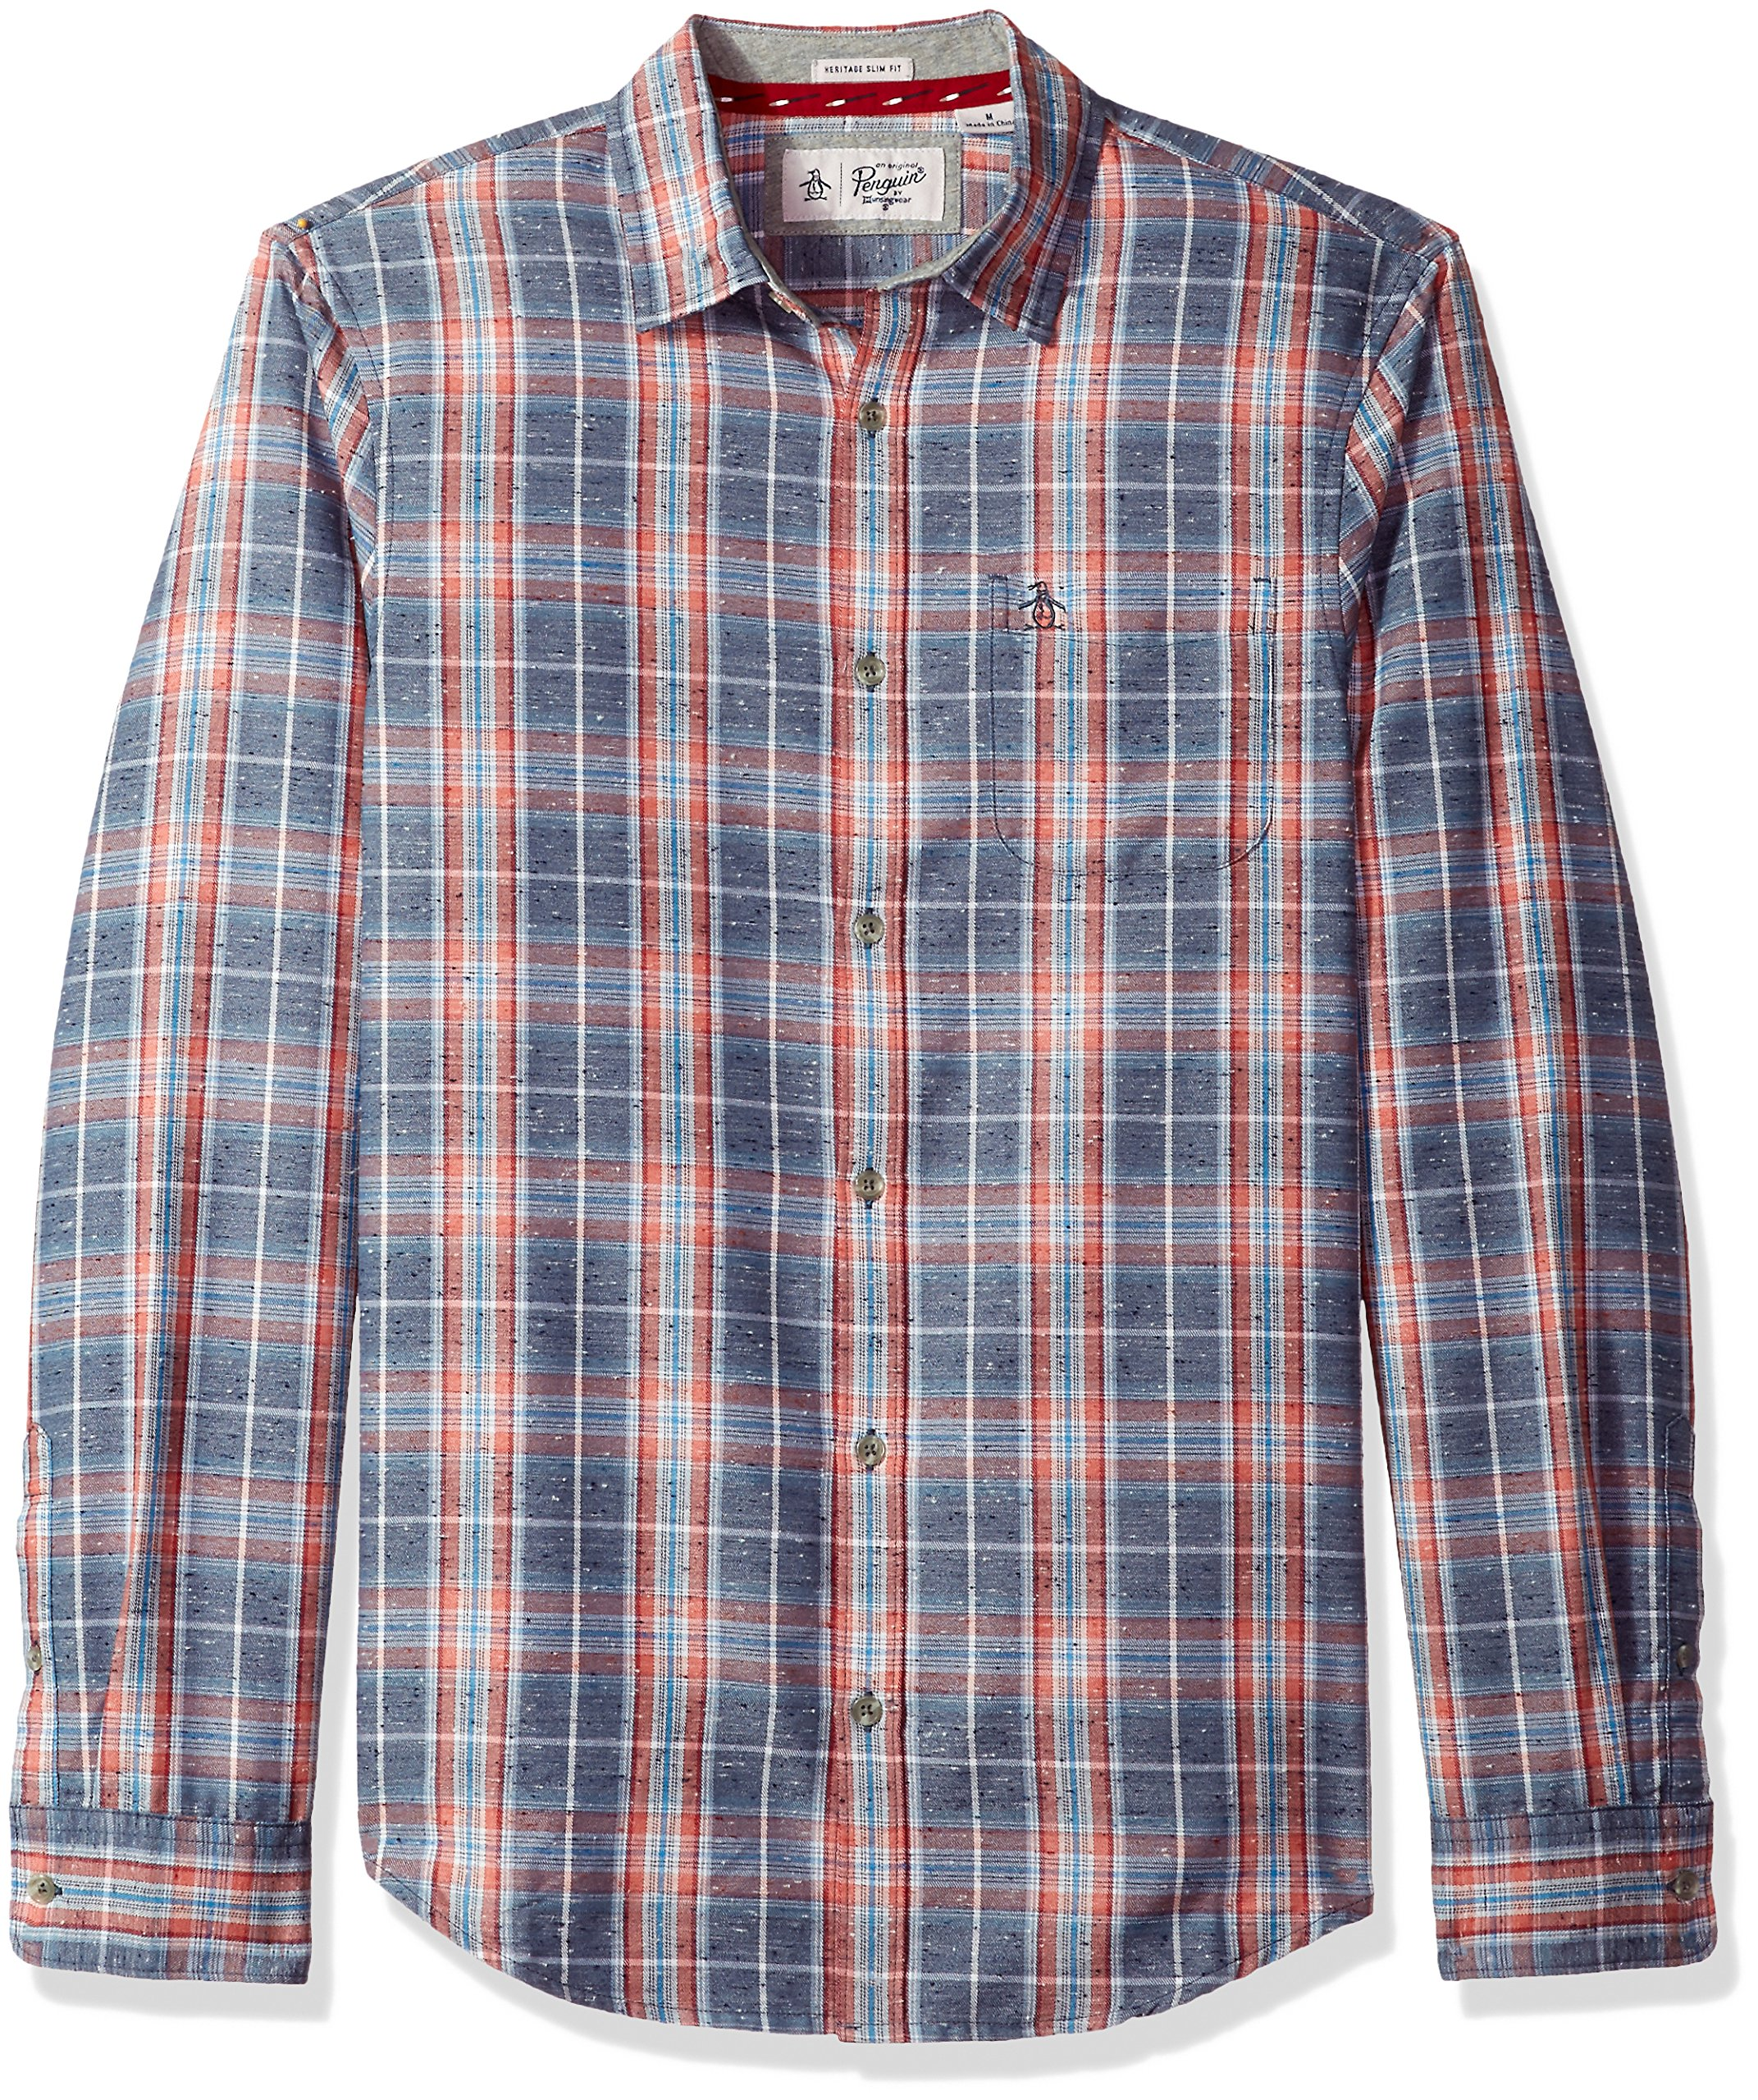 Original Penguin Men's Brushed Flannel Plaid Shirt, Vintage Indigo, Medium by Original Penguin